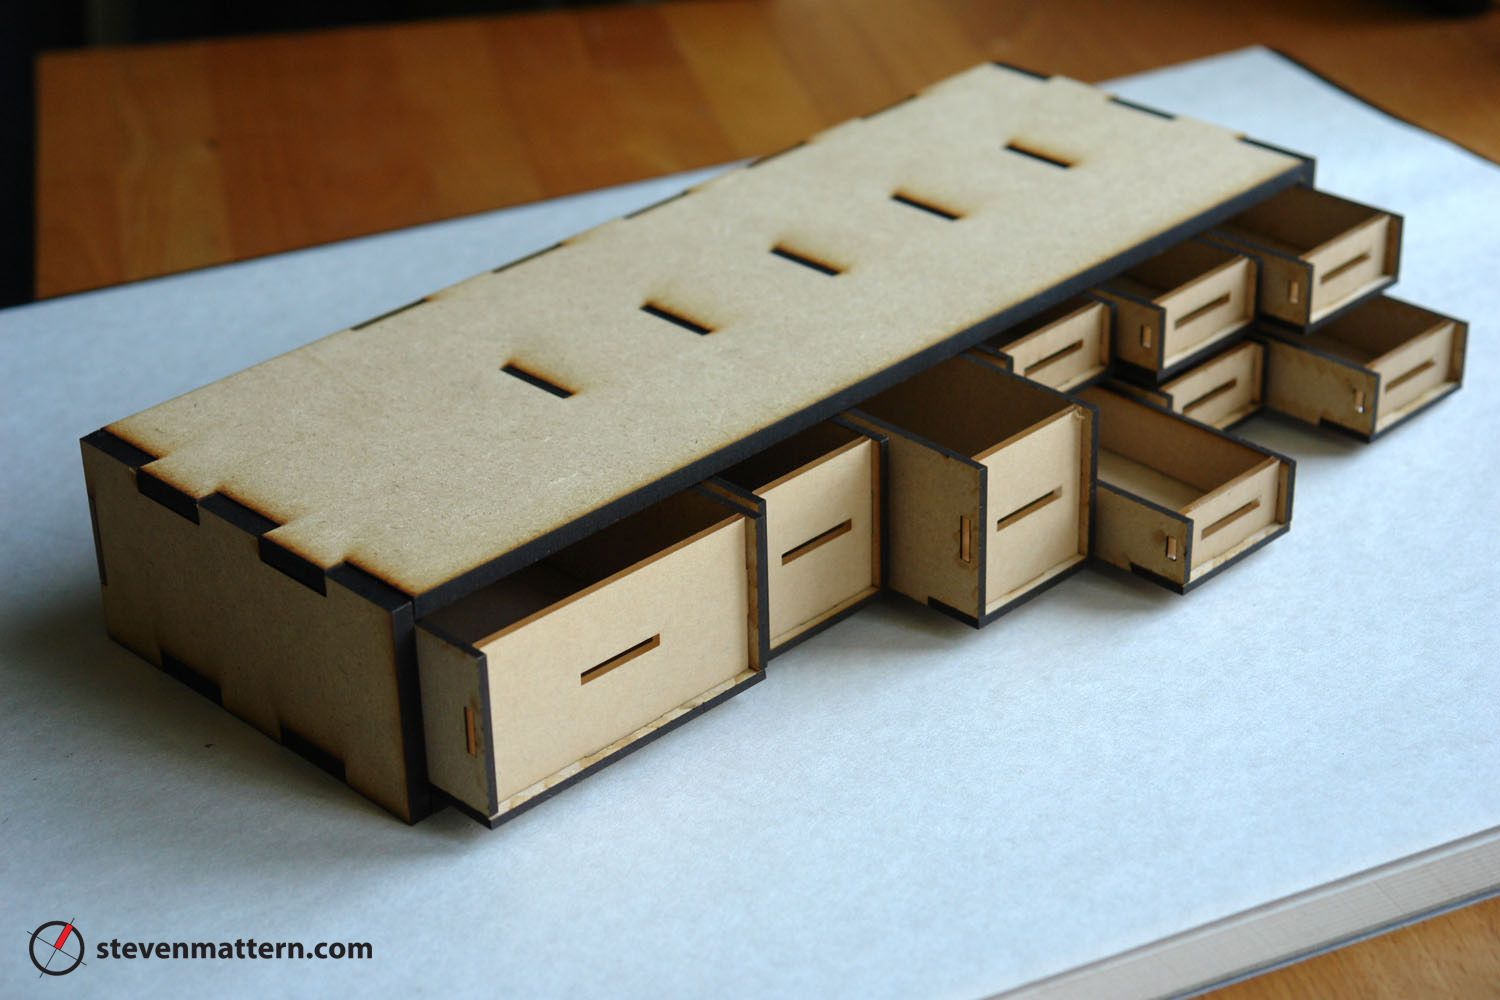 Organizer Box with Drawers - MDF & Acrylic | Boxes | Pinterest ...